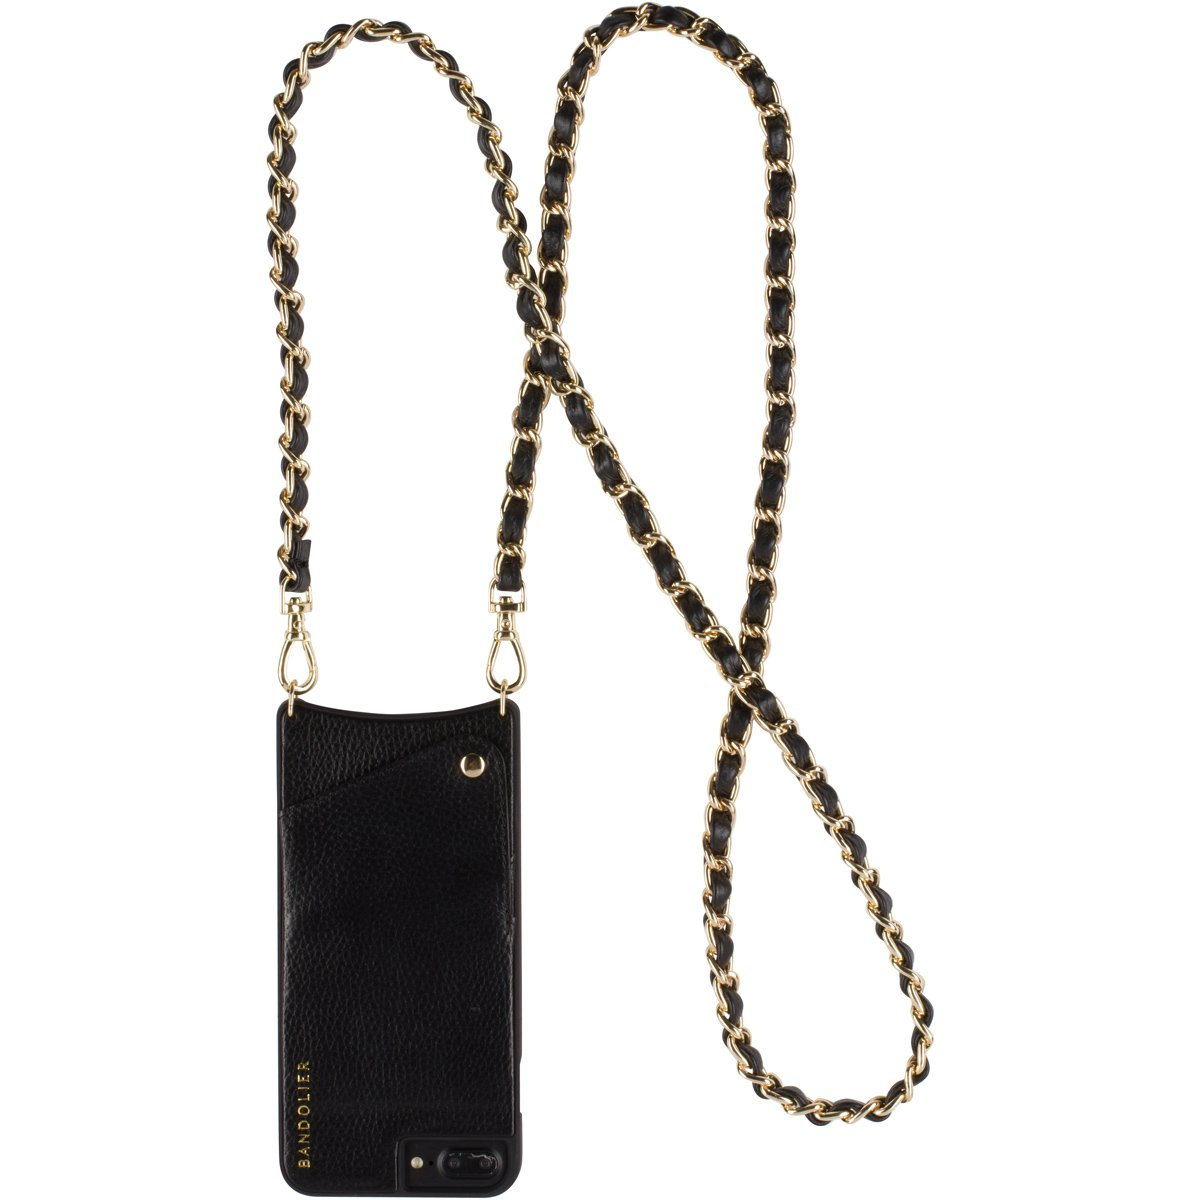 Phone Case For iPhone 8Plus, 7Plus + 6Plus | Luxury Black Leather Women Wallet + GOLD Hardware Cross-Body Strap Cell Case for ID & Credit Cards. Mobile Purse Carry Handsfree. Libby by Bandolier.